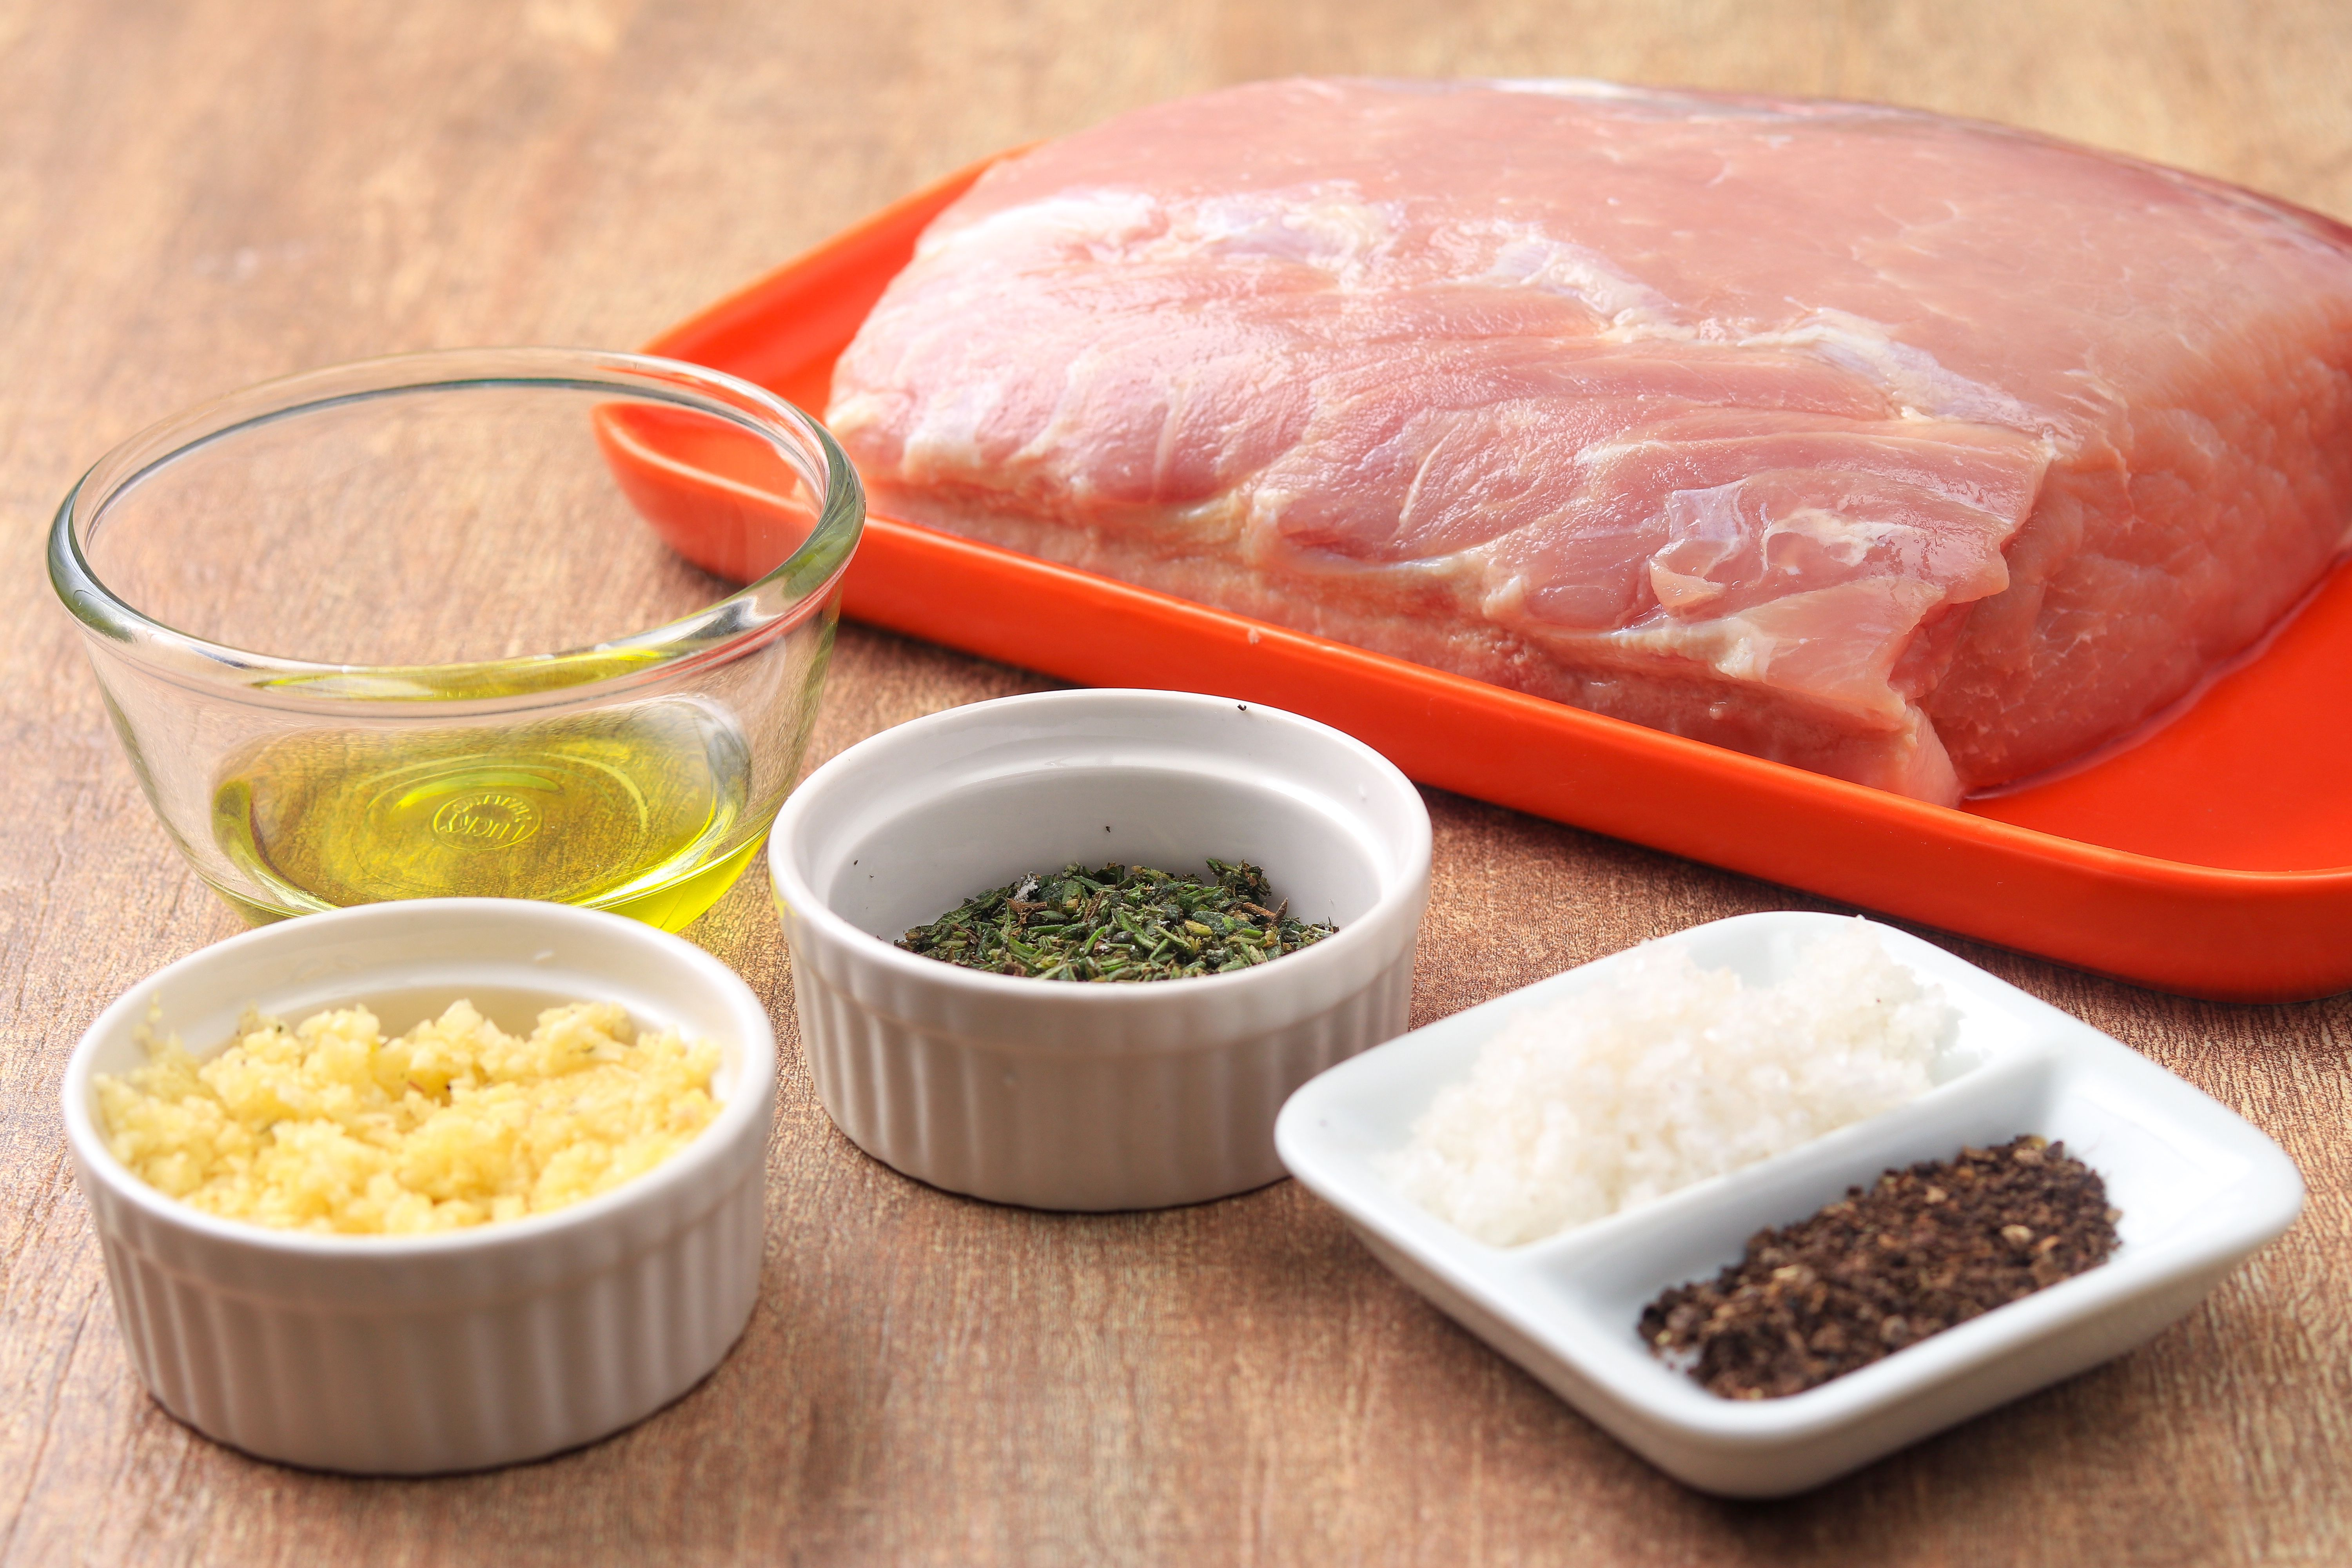 Ingredients for garlic and herb pork loin